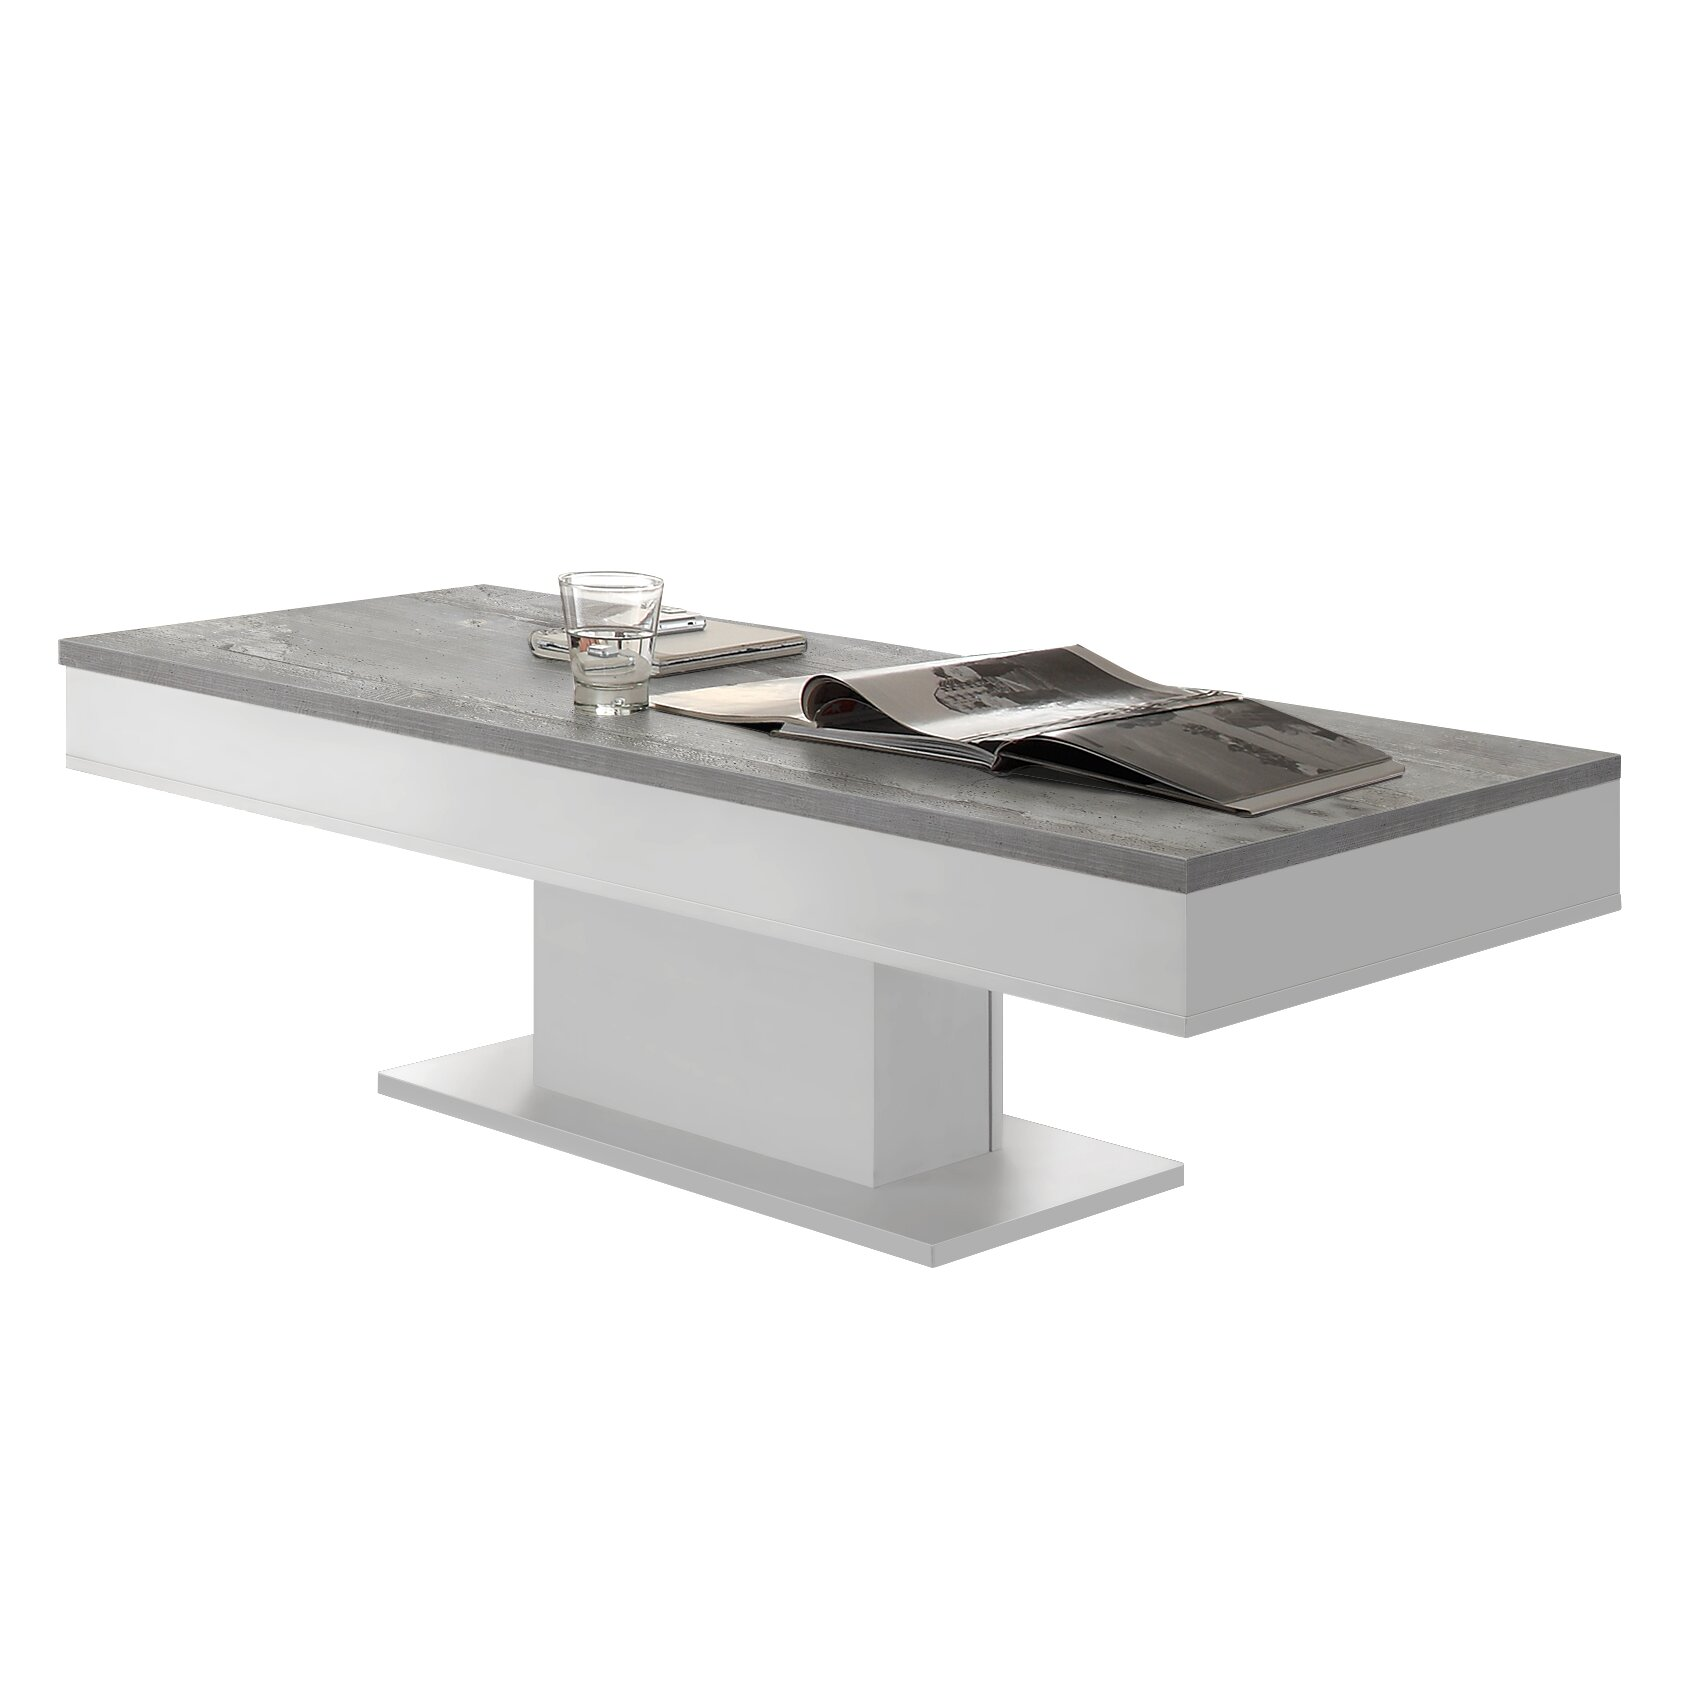 Japanese tea table dimensions - Granny Coffee Table With Storage